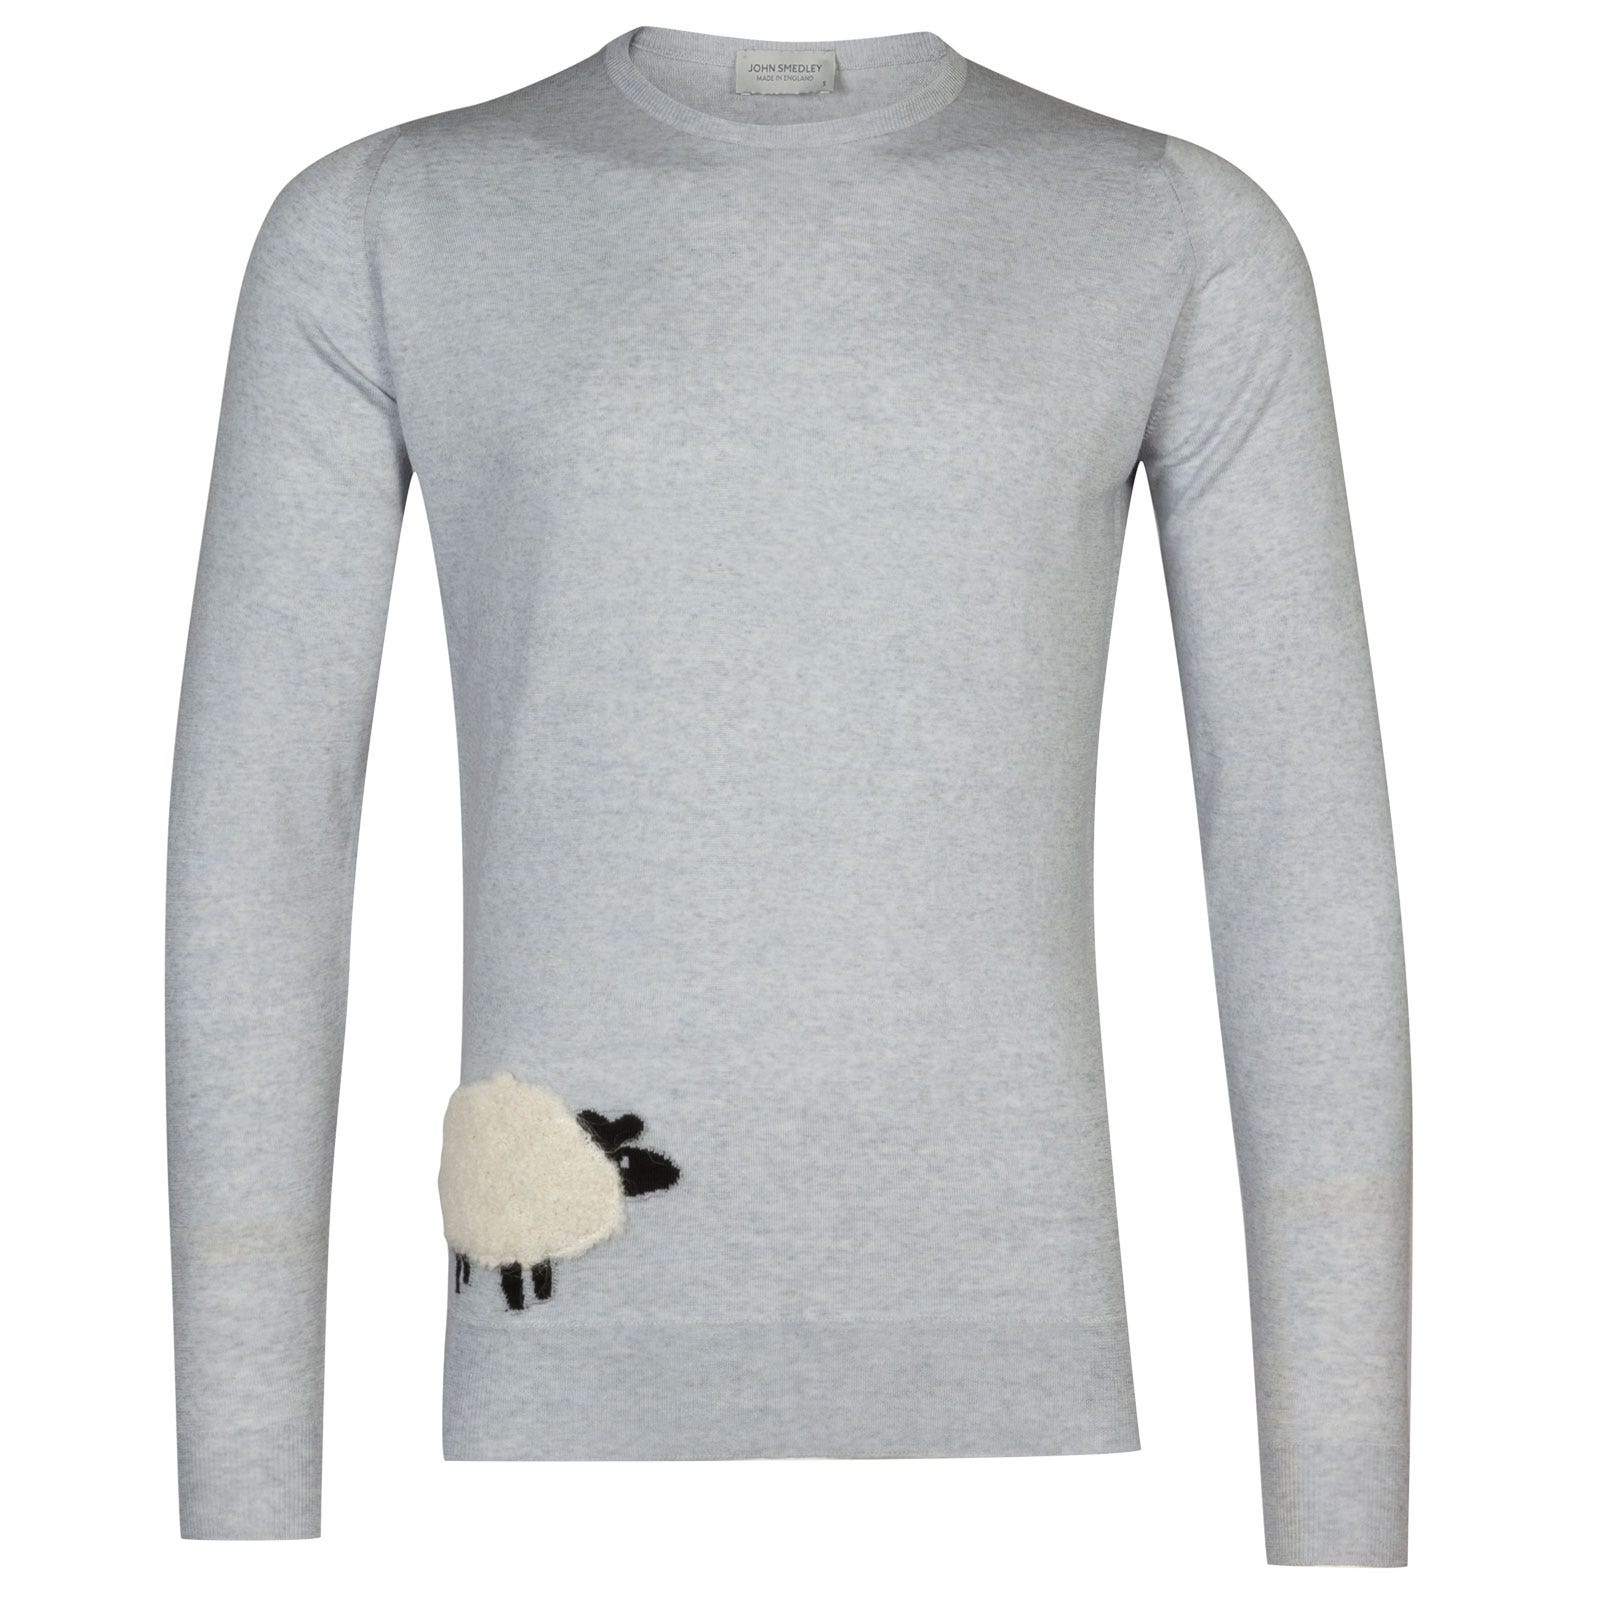 John Smedley Sheep Merino Wool Sweater in Kielder Green/Snow White-XL